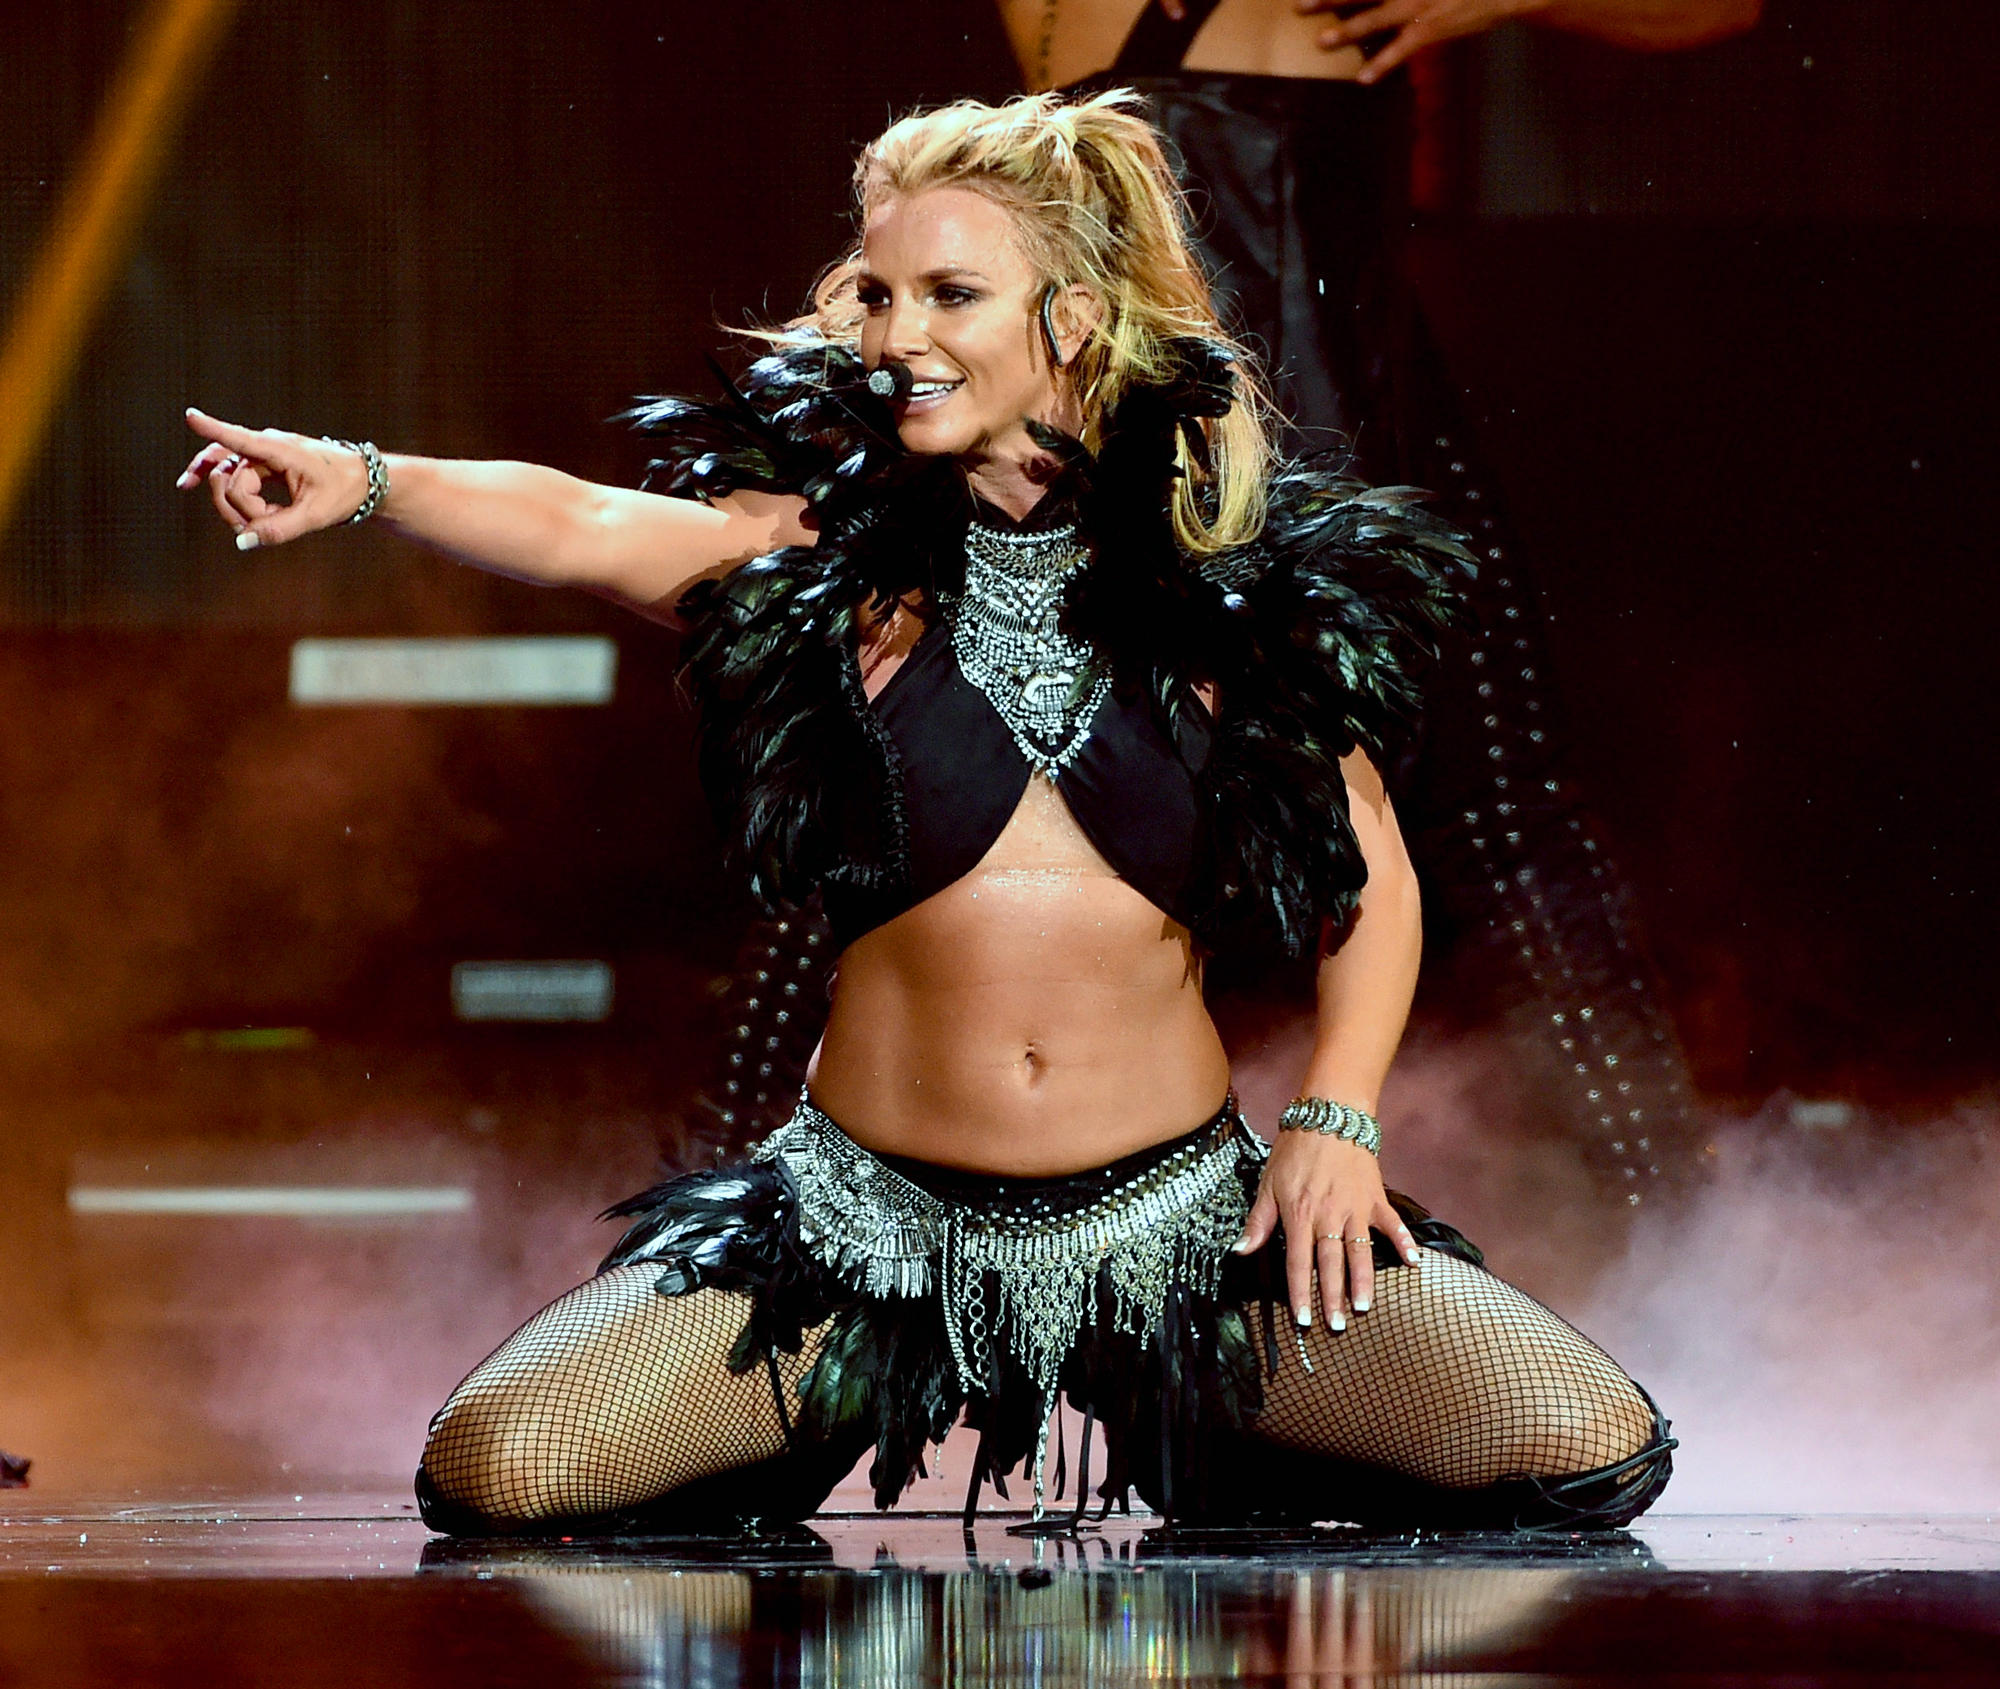 Sounds Like Britney Spears' Vegas Residency Is Ending